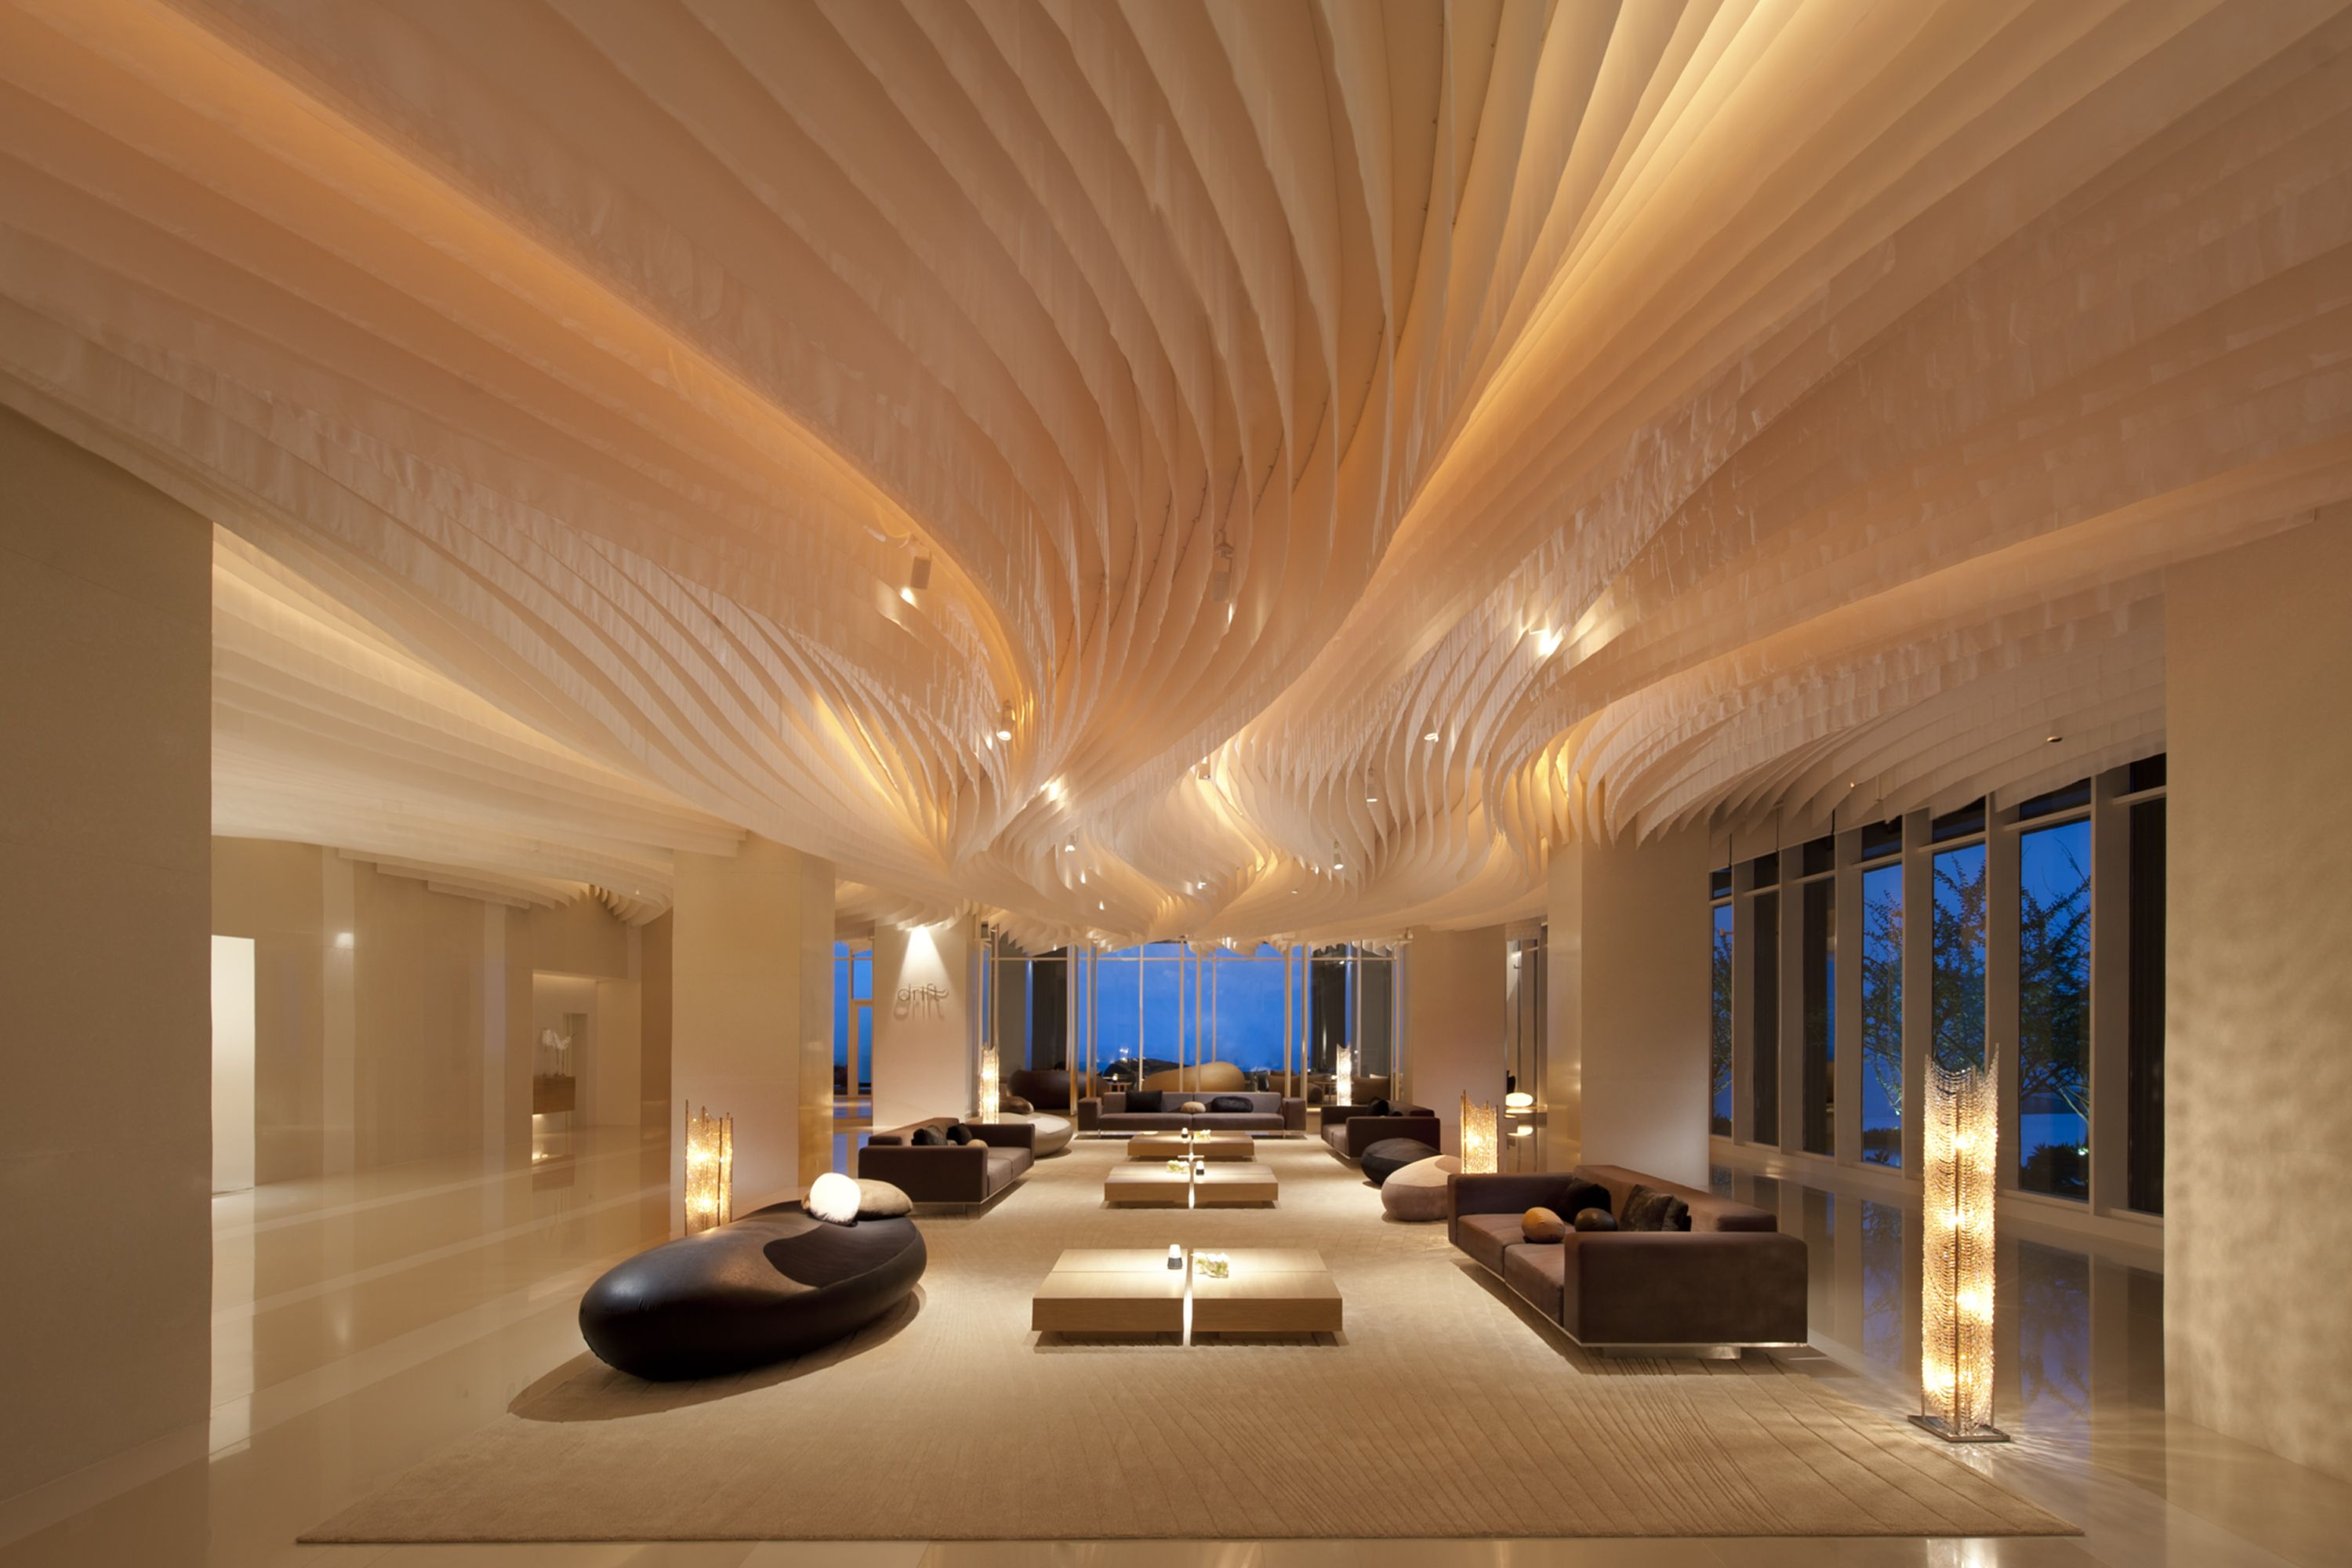 Modern And Futuristic Hotel Lobby Interior Design Interior Beautiful Hotel  Lobby